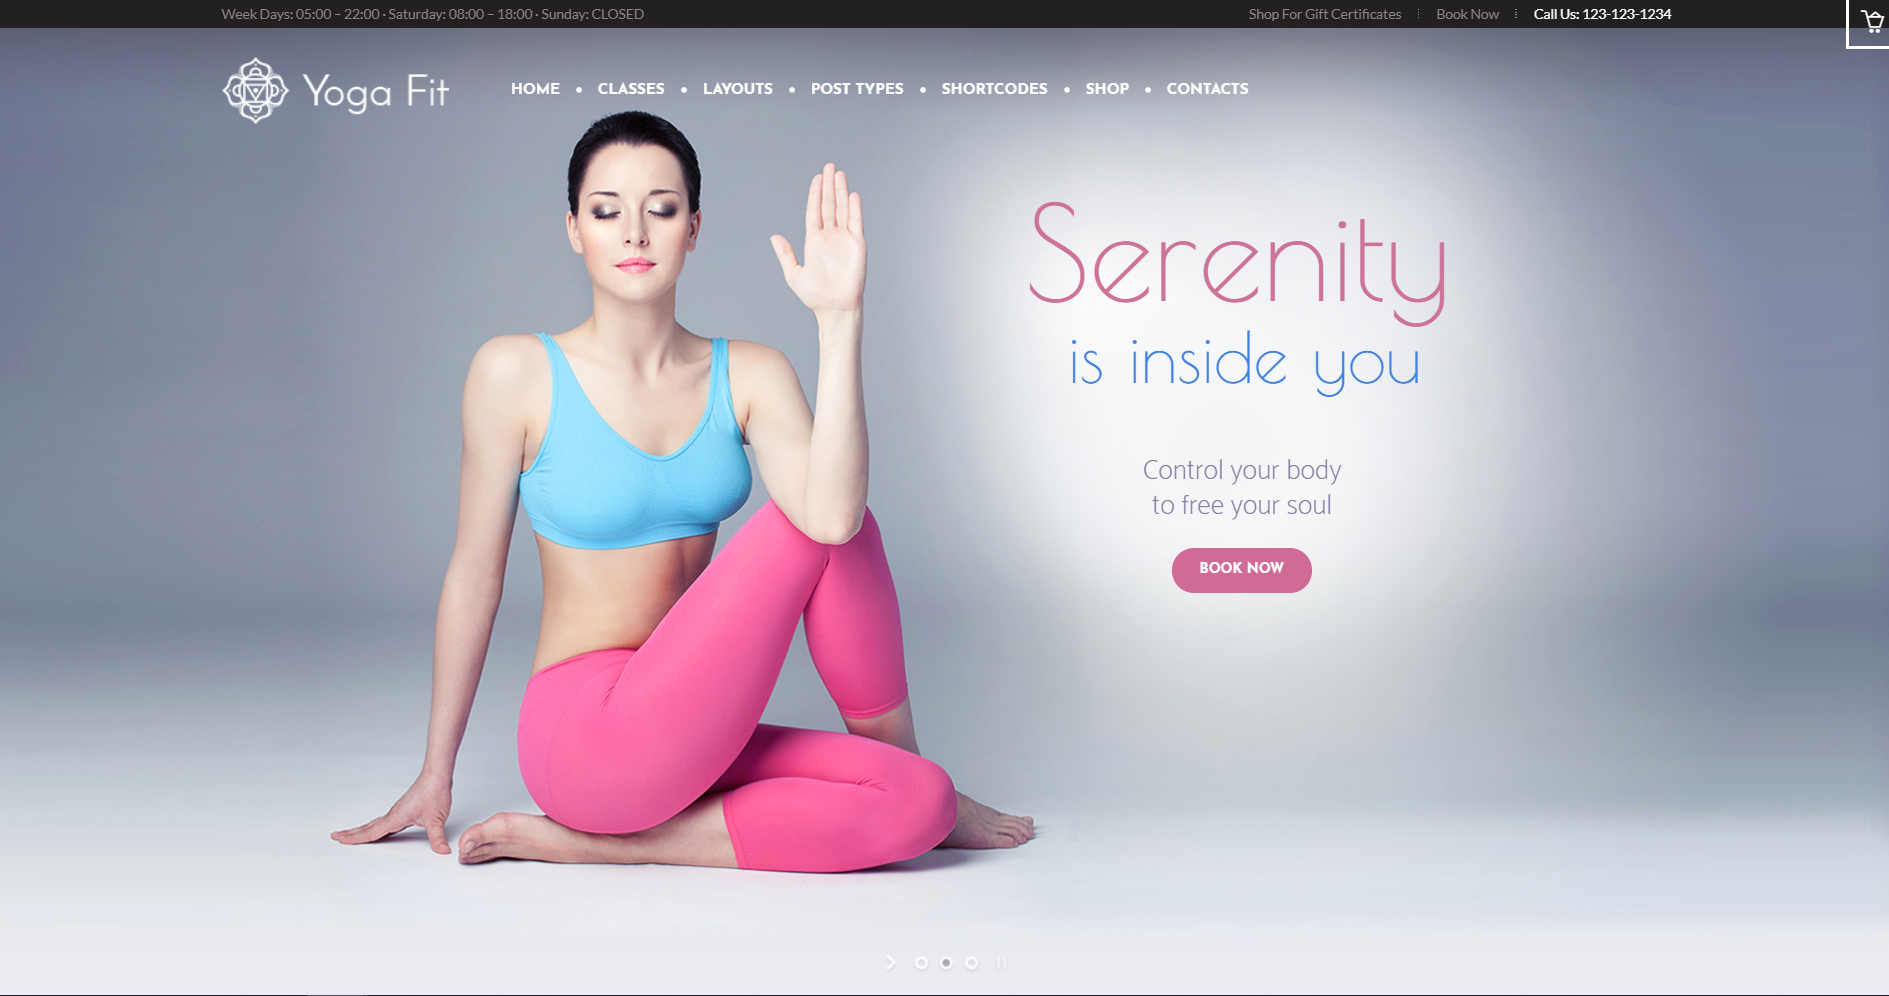 15. Yoga Fit - Sports, Fitness & Gym WordPress Theme